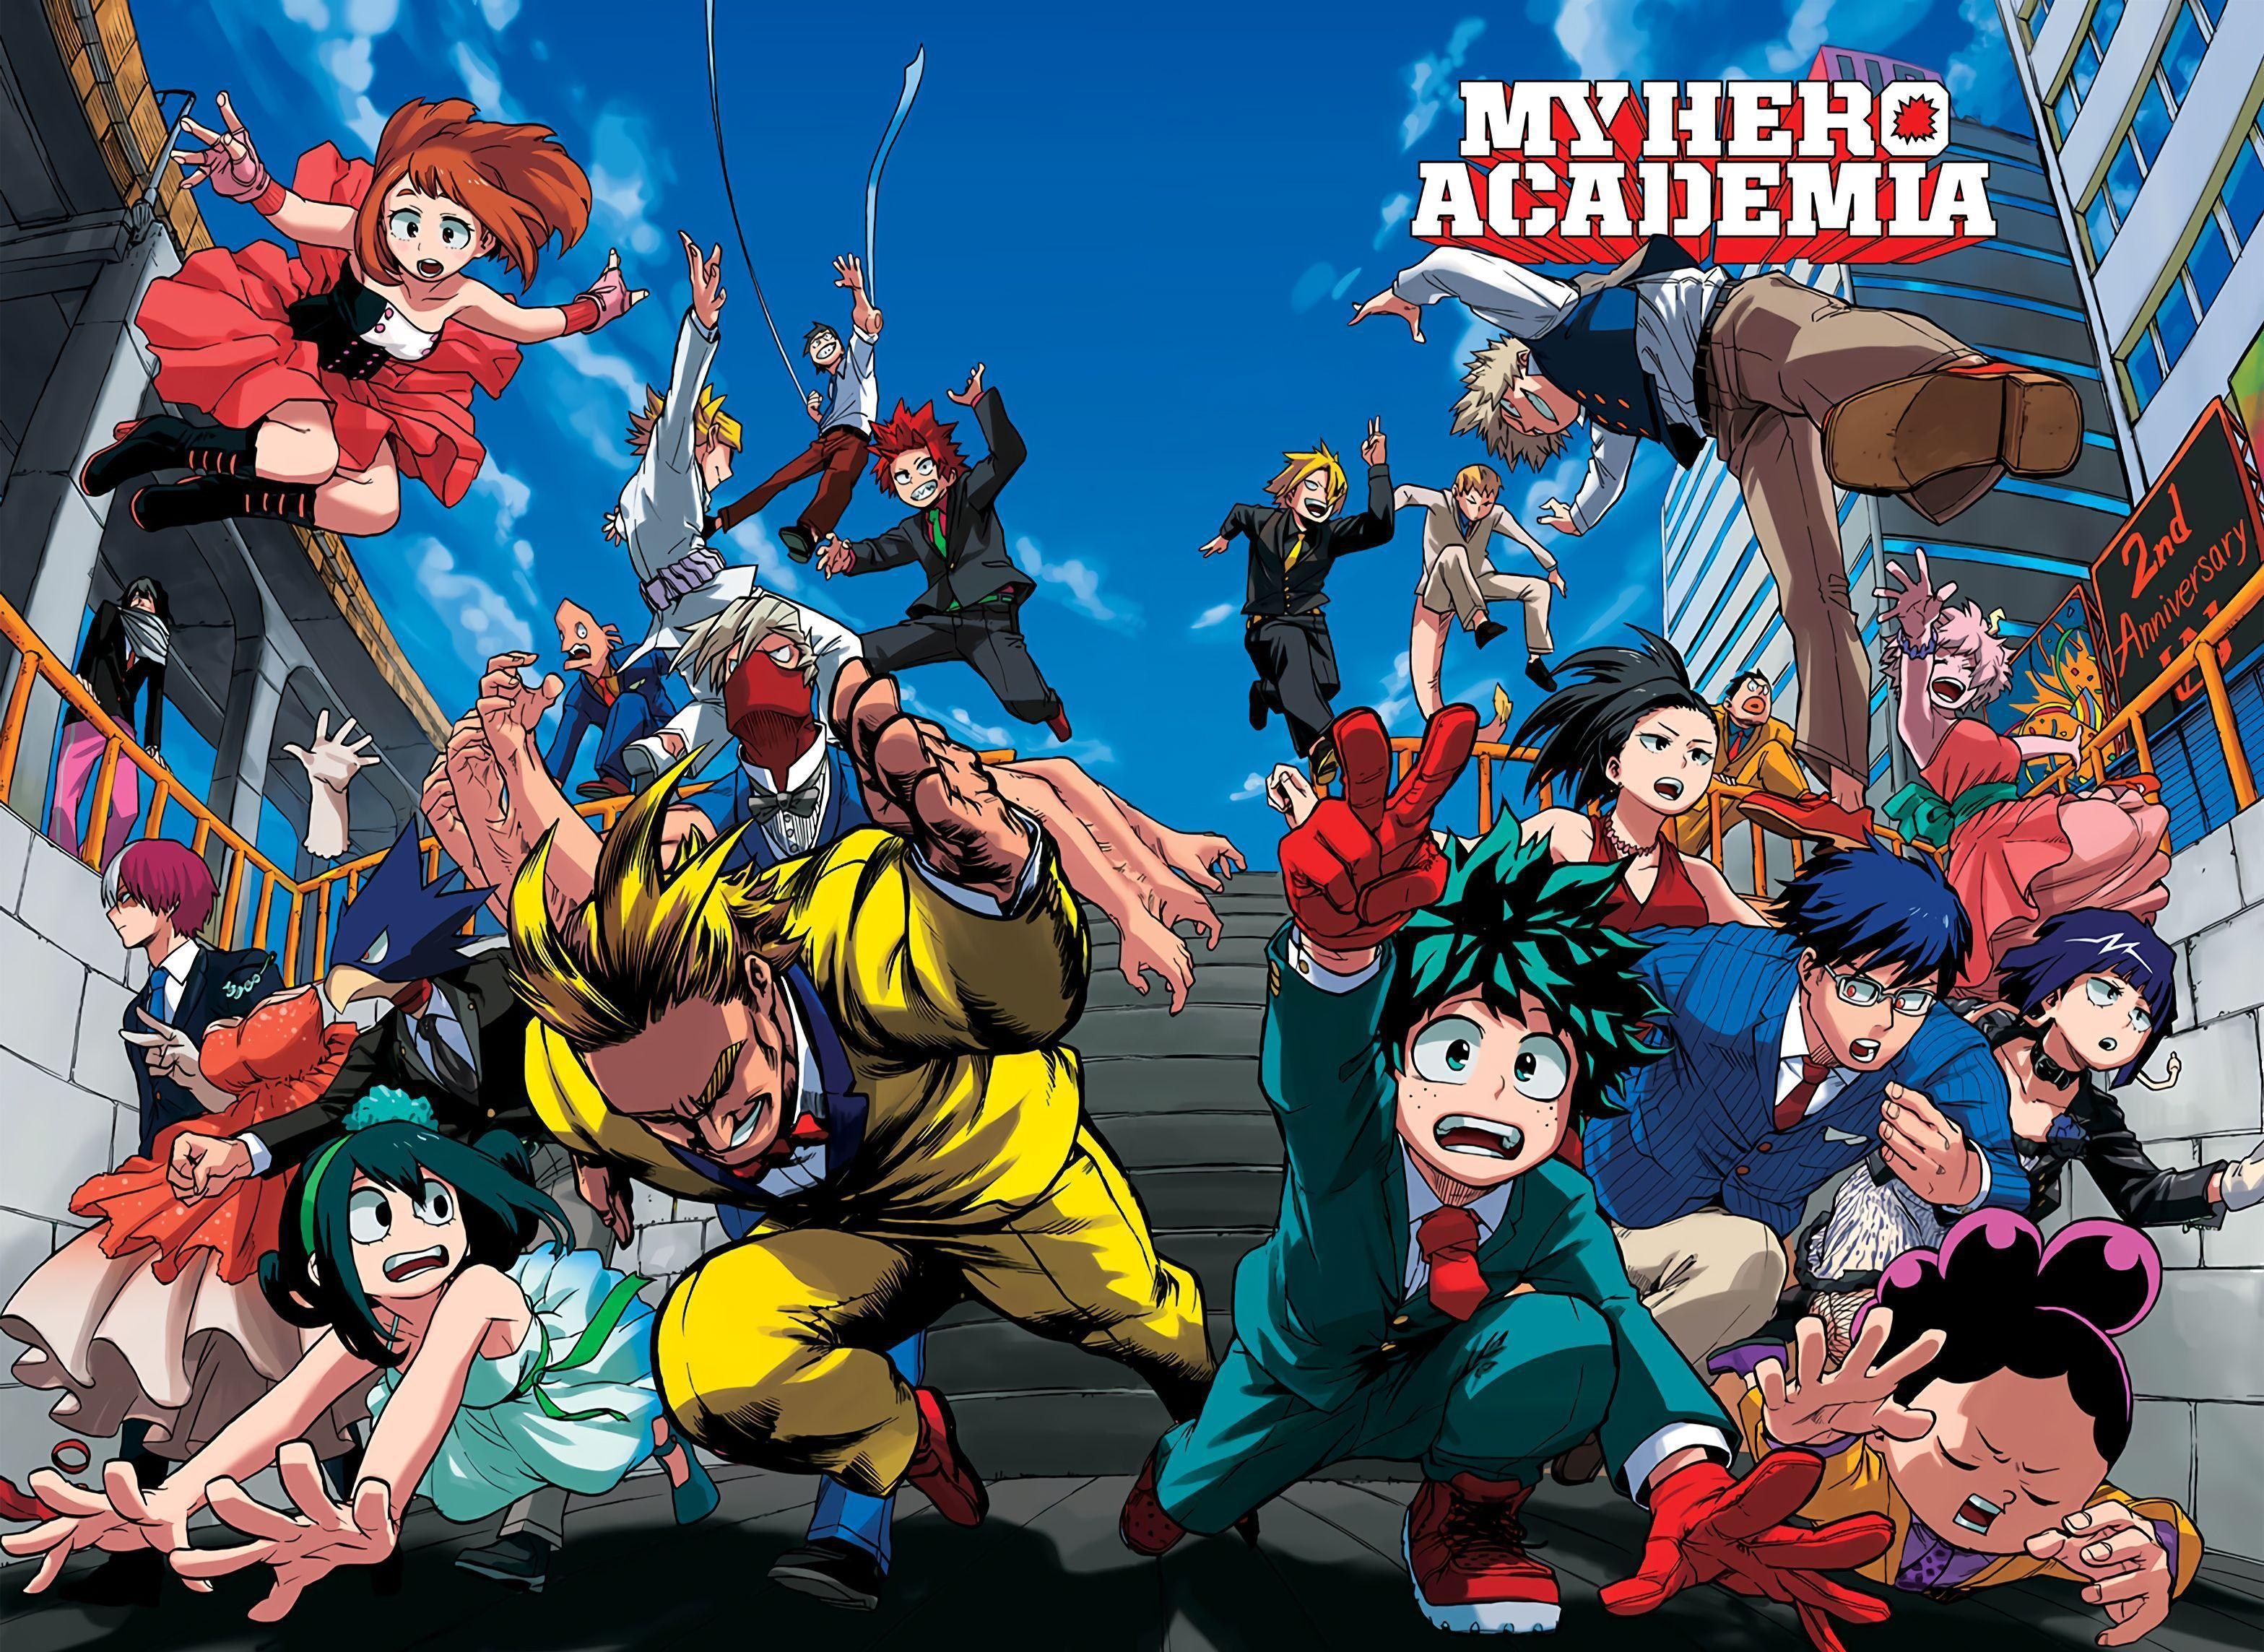 My Hero Academia 4k Wallpapers Top Free My Hero Academia 4k